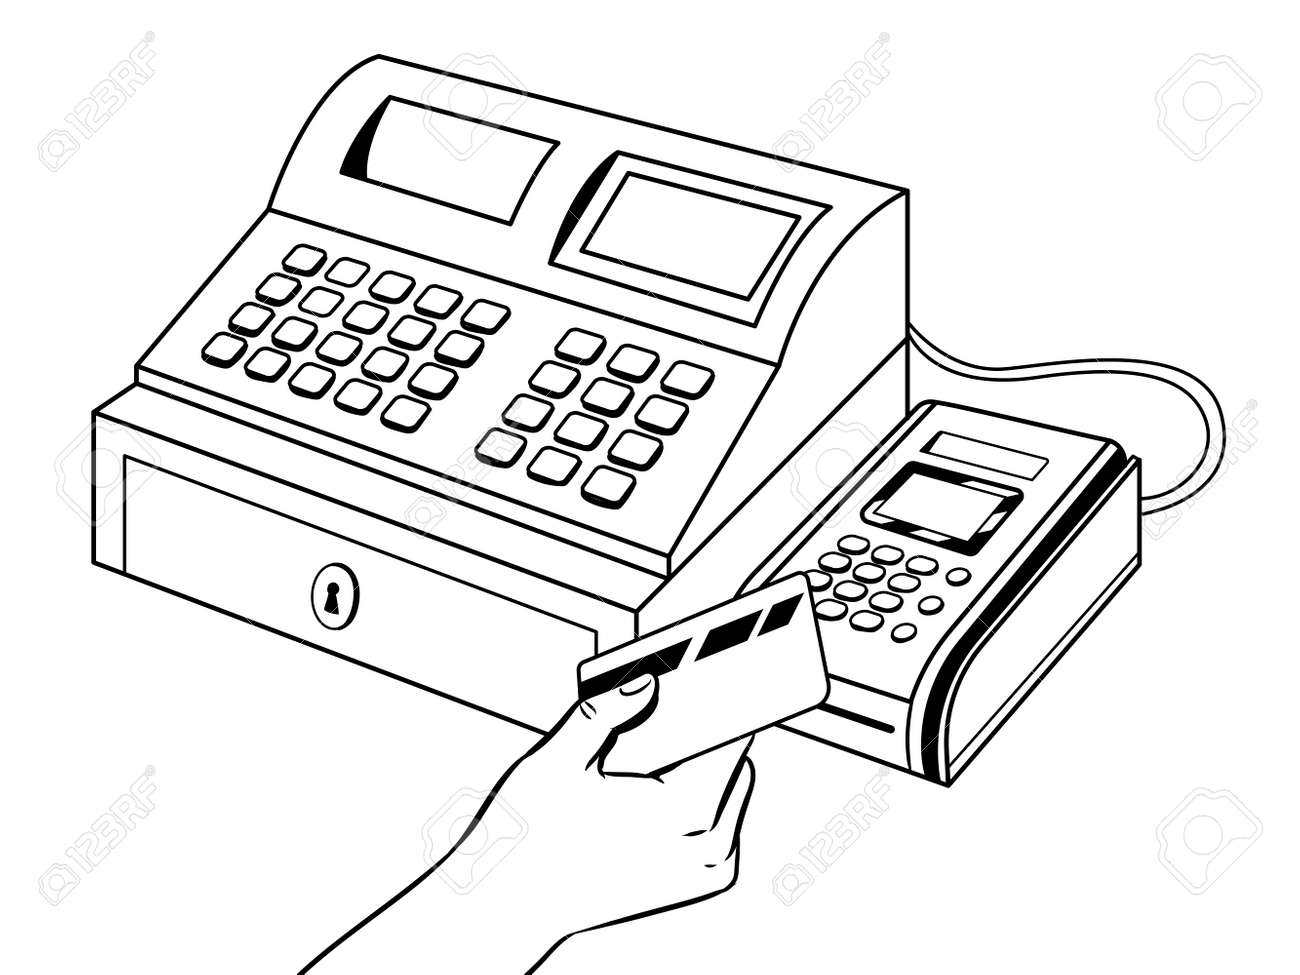 Cash Register With Pos Terminal Coloring Book Royalty Free Cliparts ...